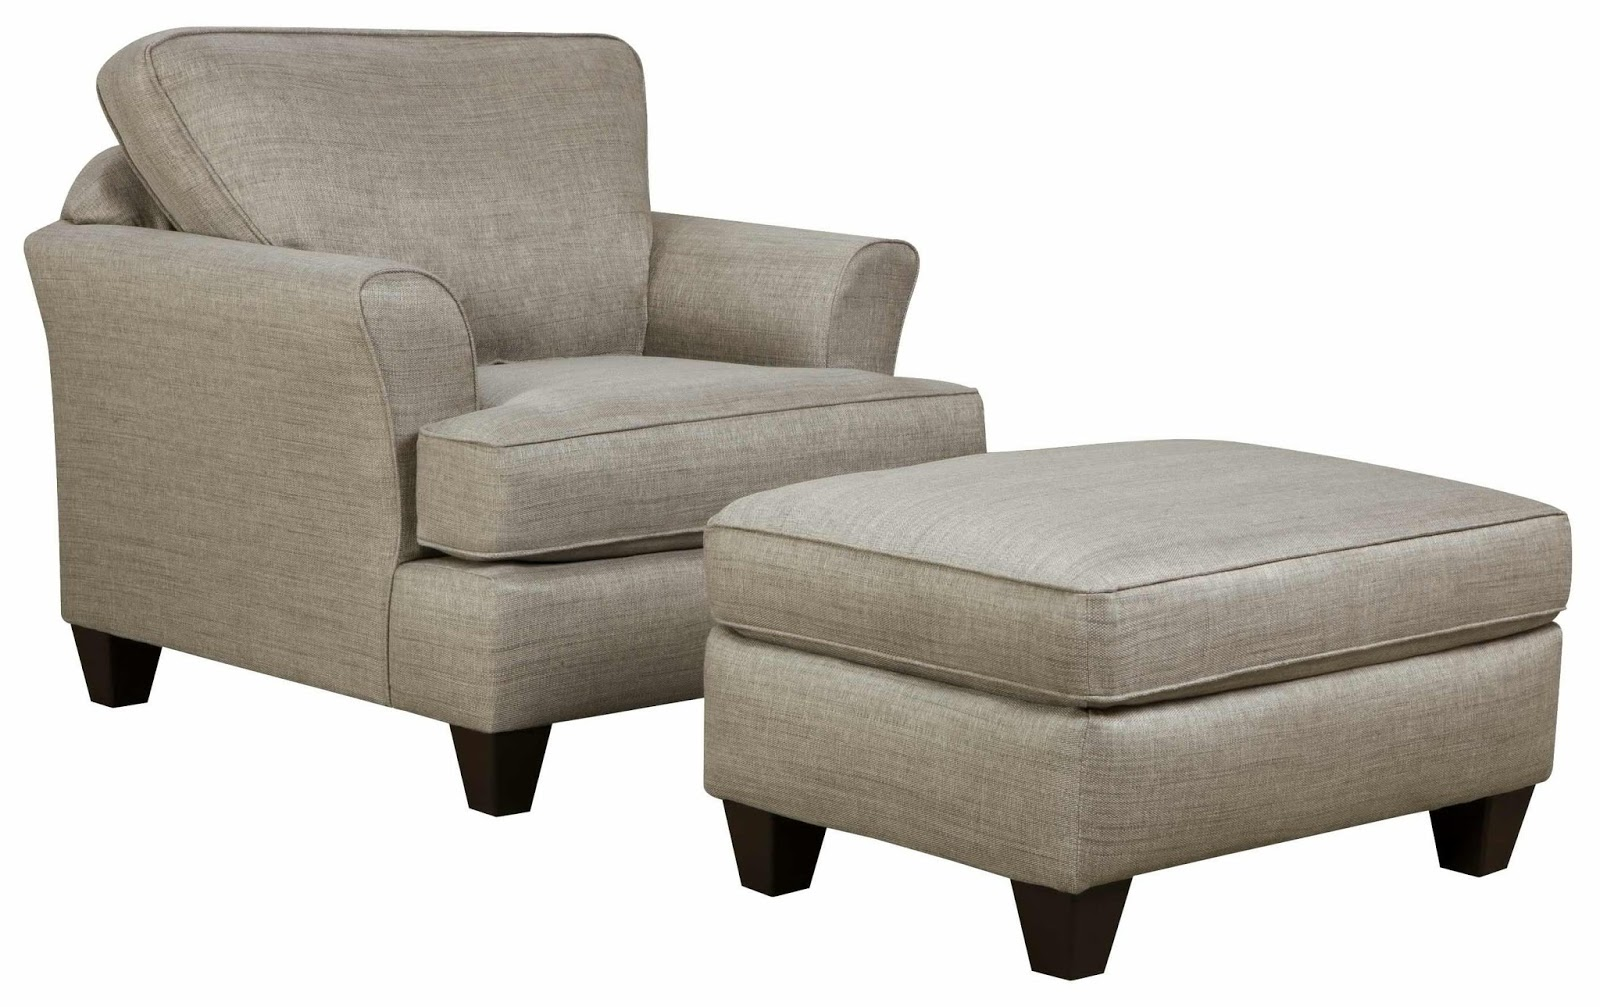 Living room chairs with ottomans large style home cheap for Large living room chairs